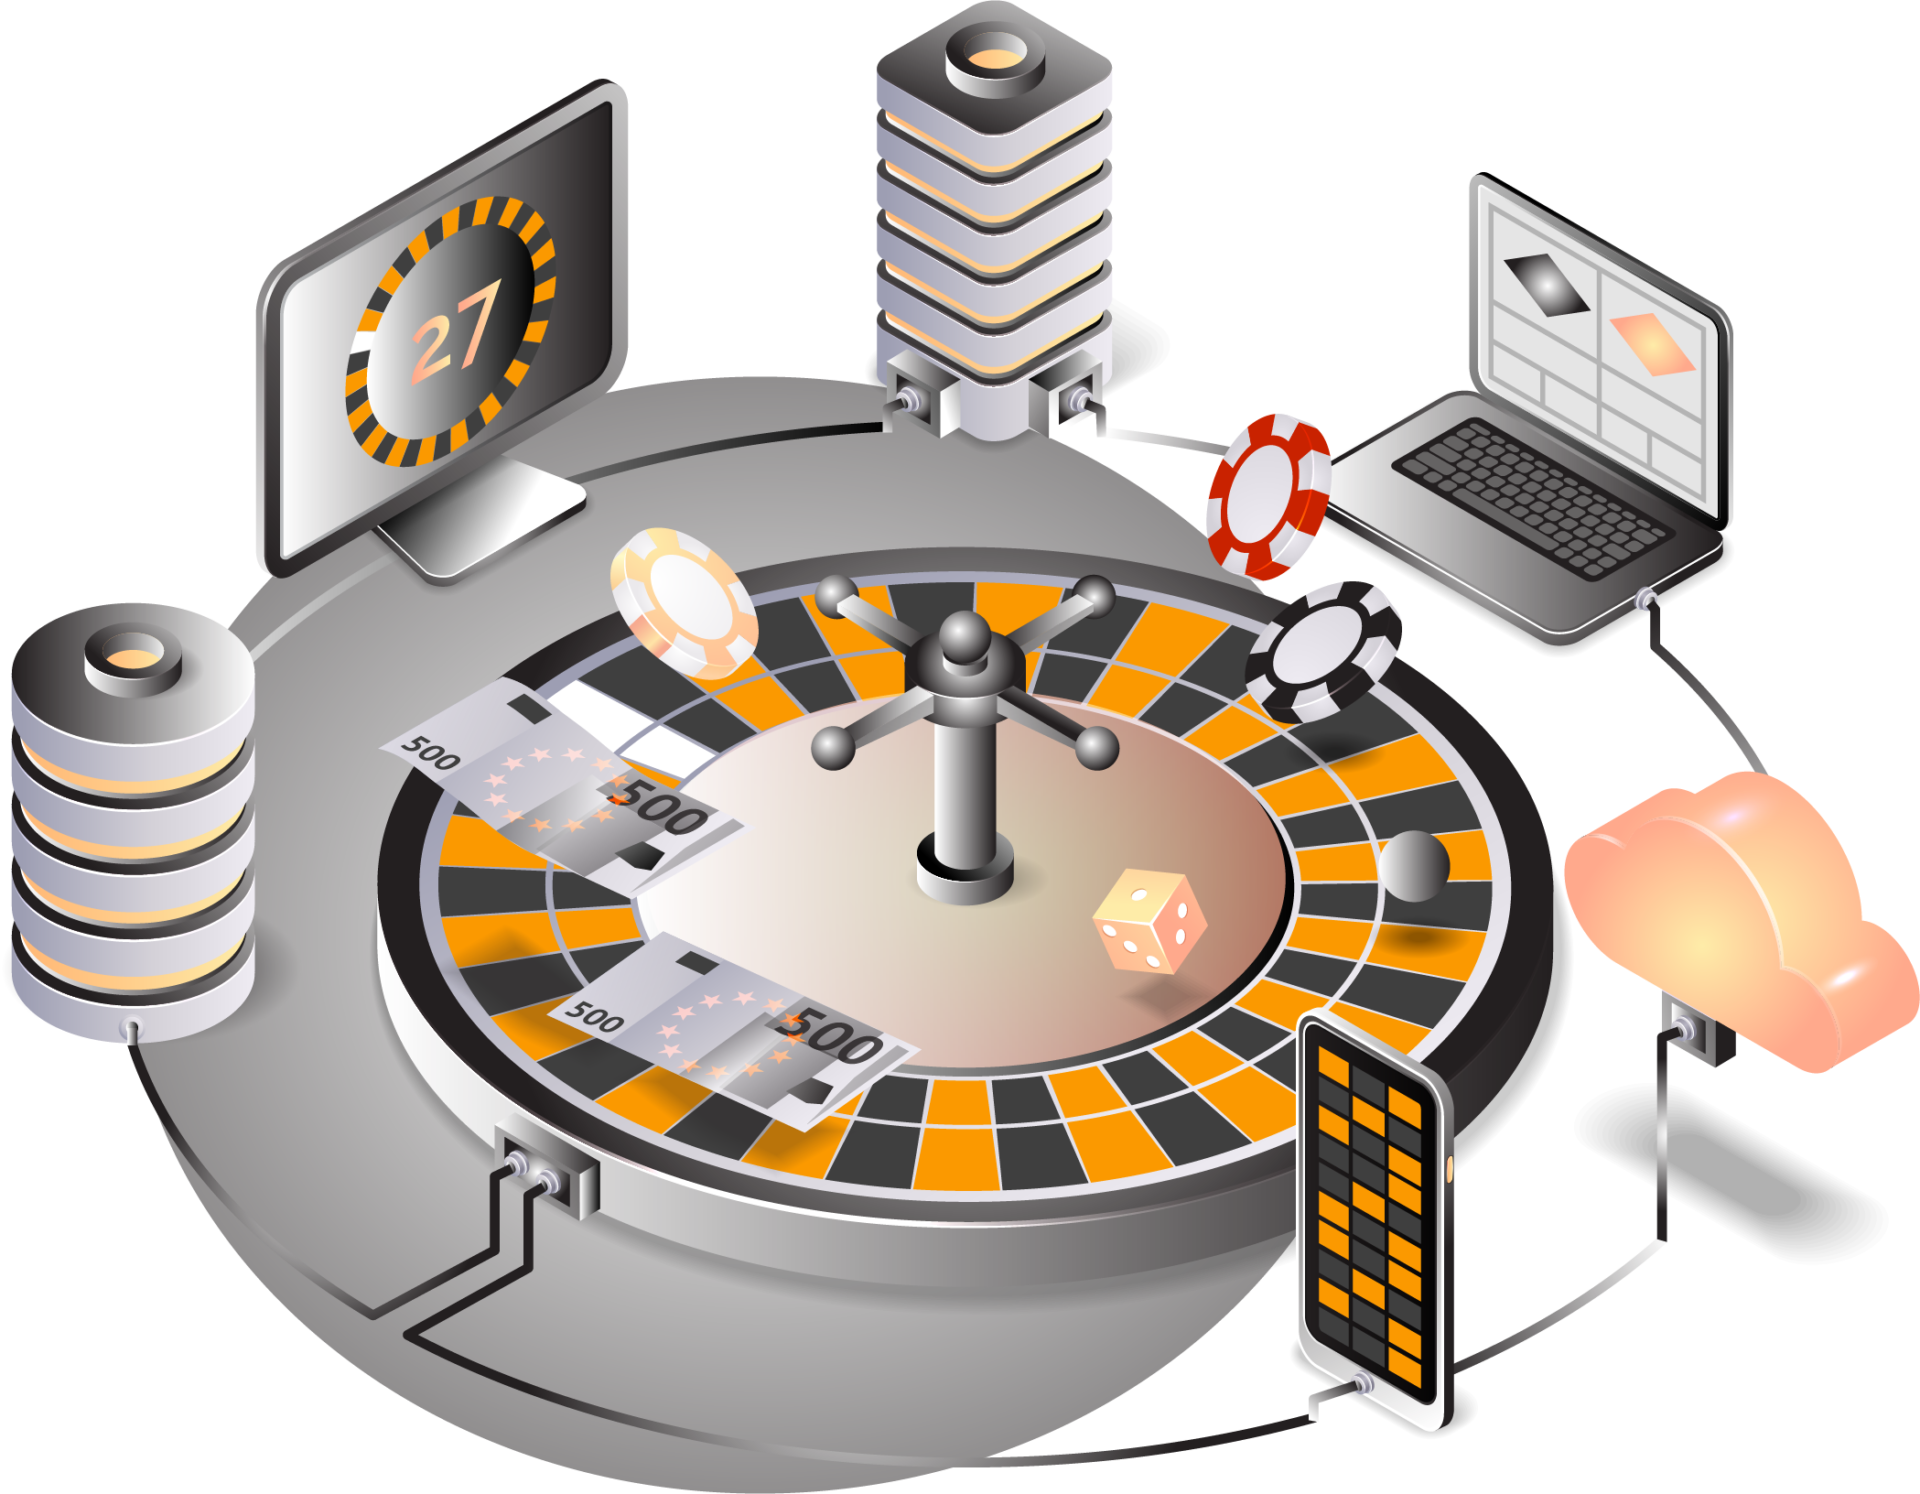 Reduce churn, grow lifetime value, and deliver a superior player experience in iGaming